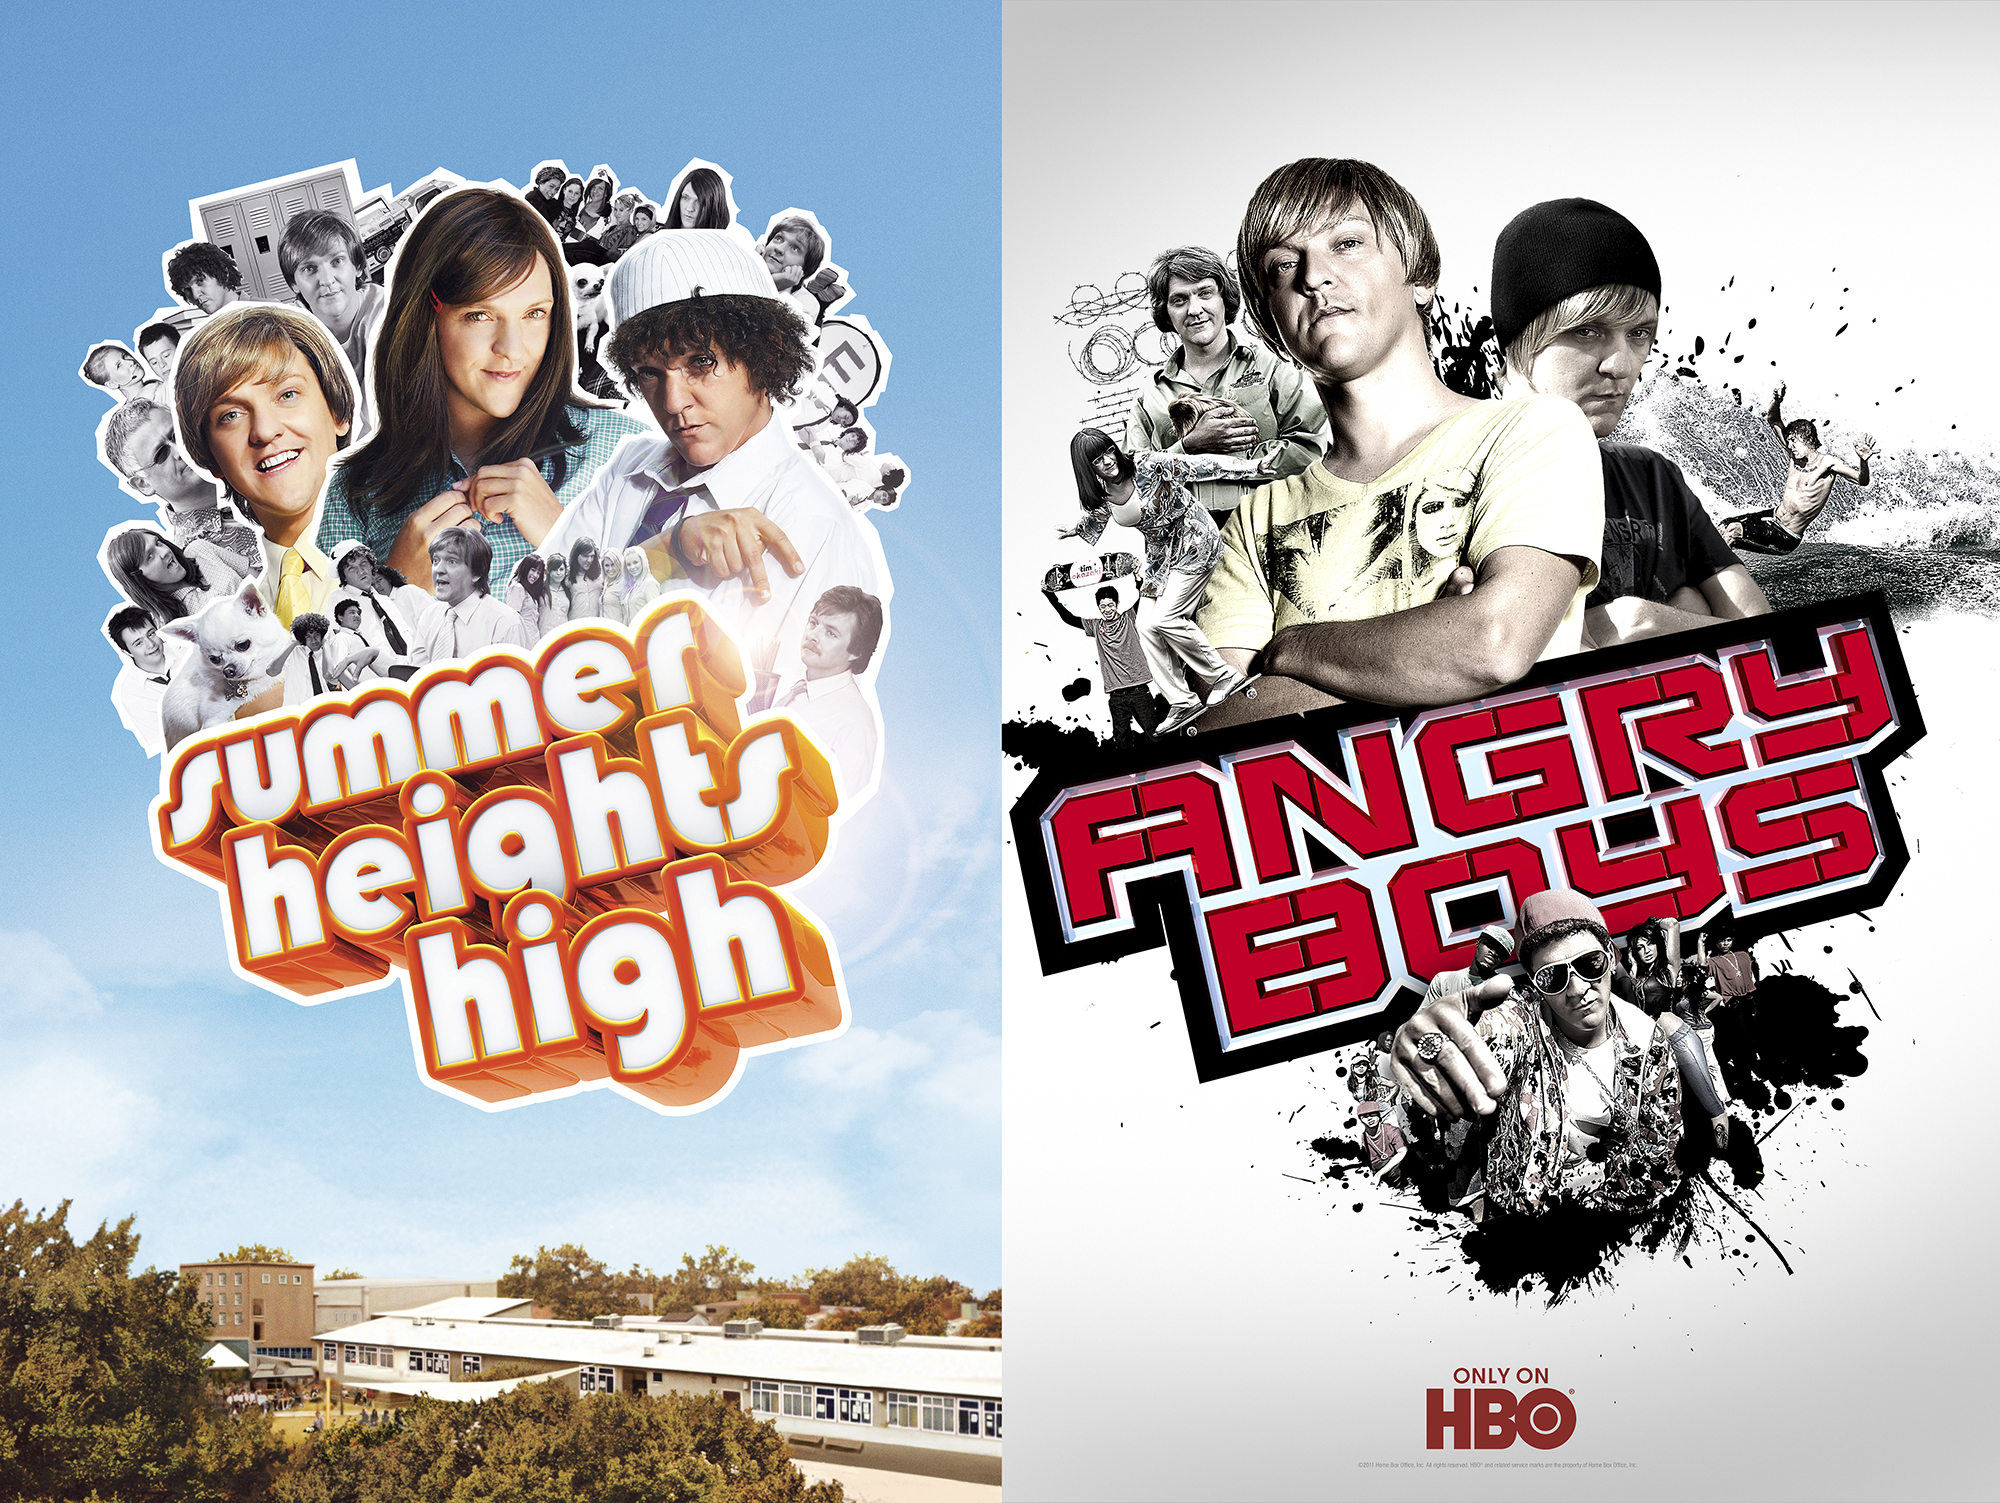 SUMMER HEIGHTS HIGH  &  ANGRY BOYS,  HBO